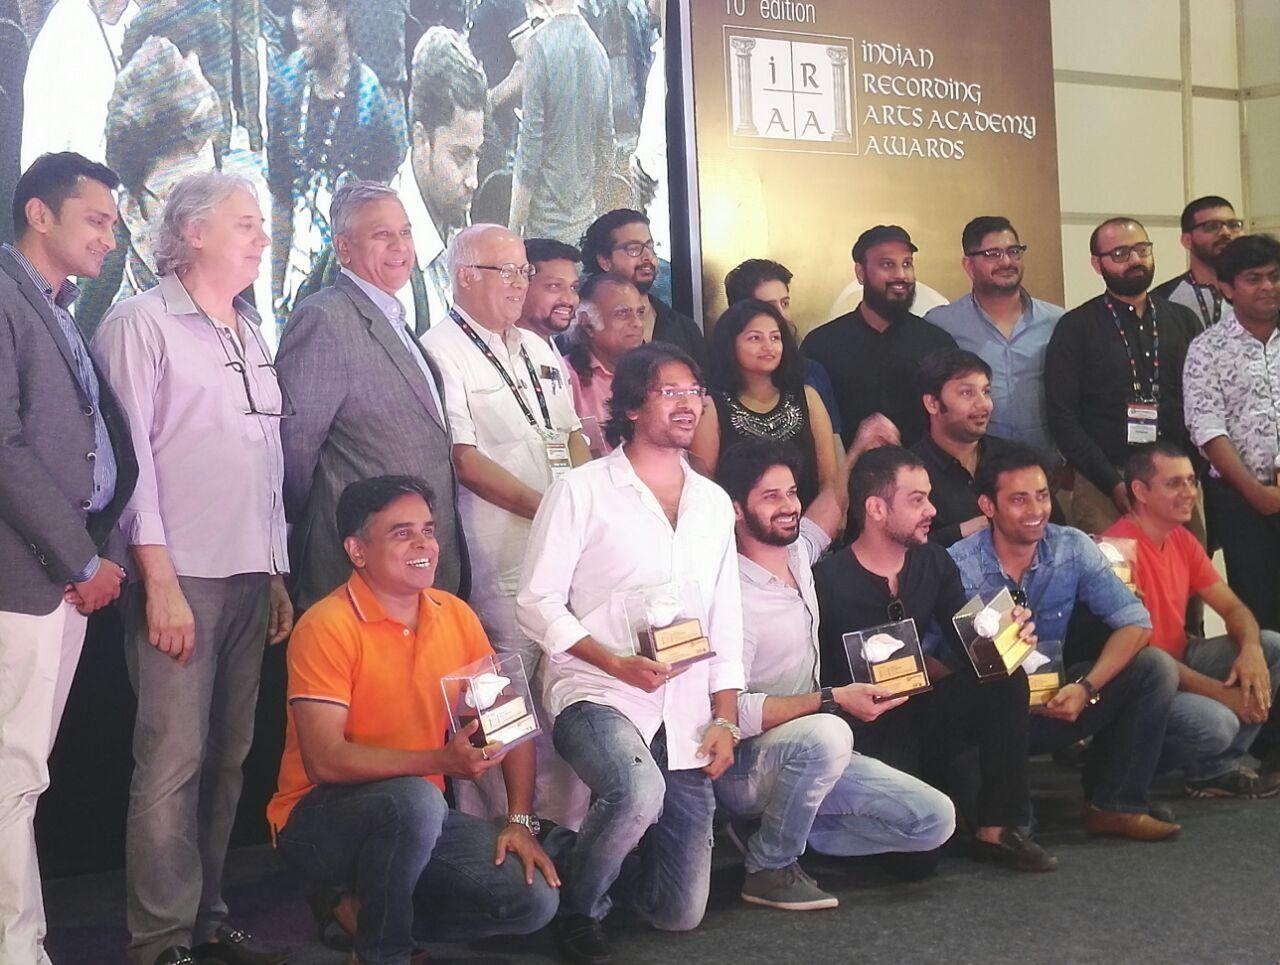 All IRAA Award winners